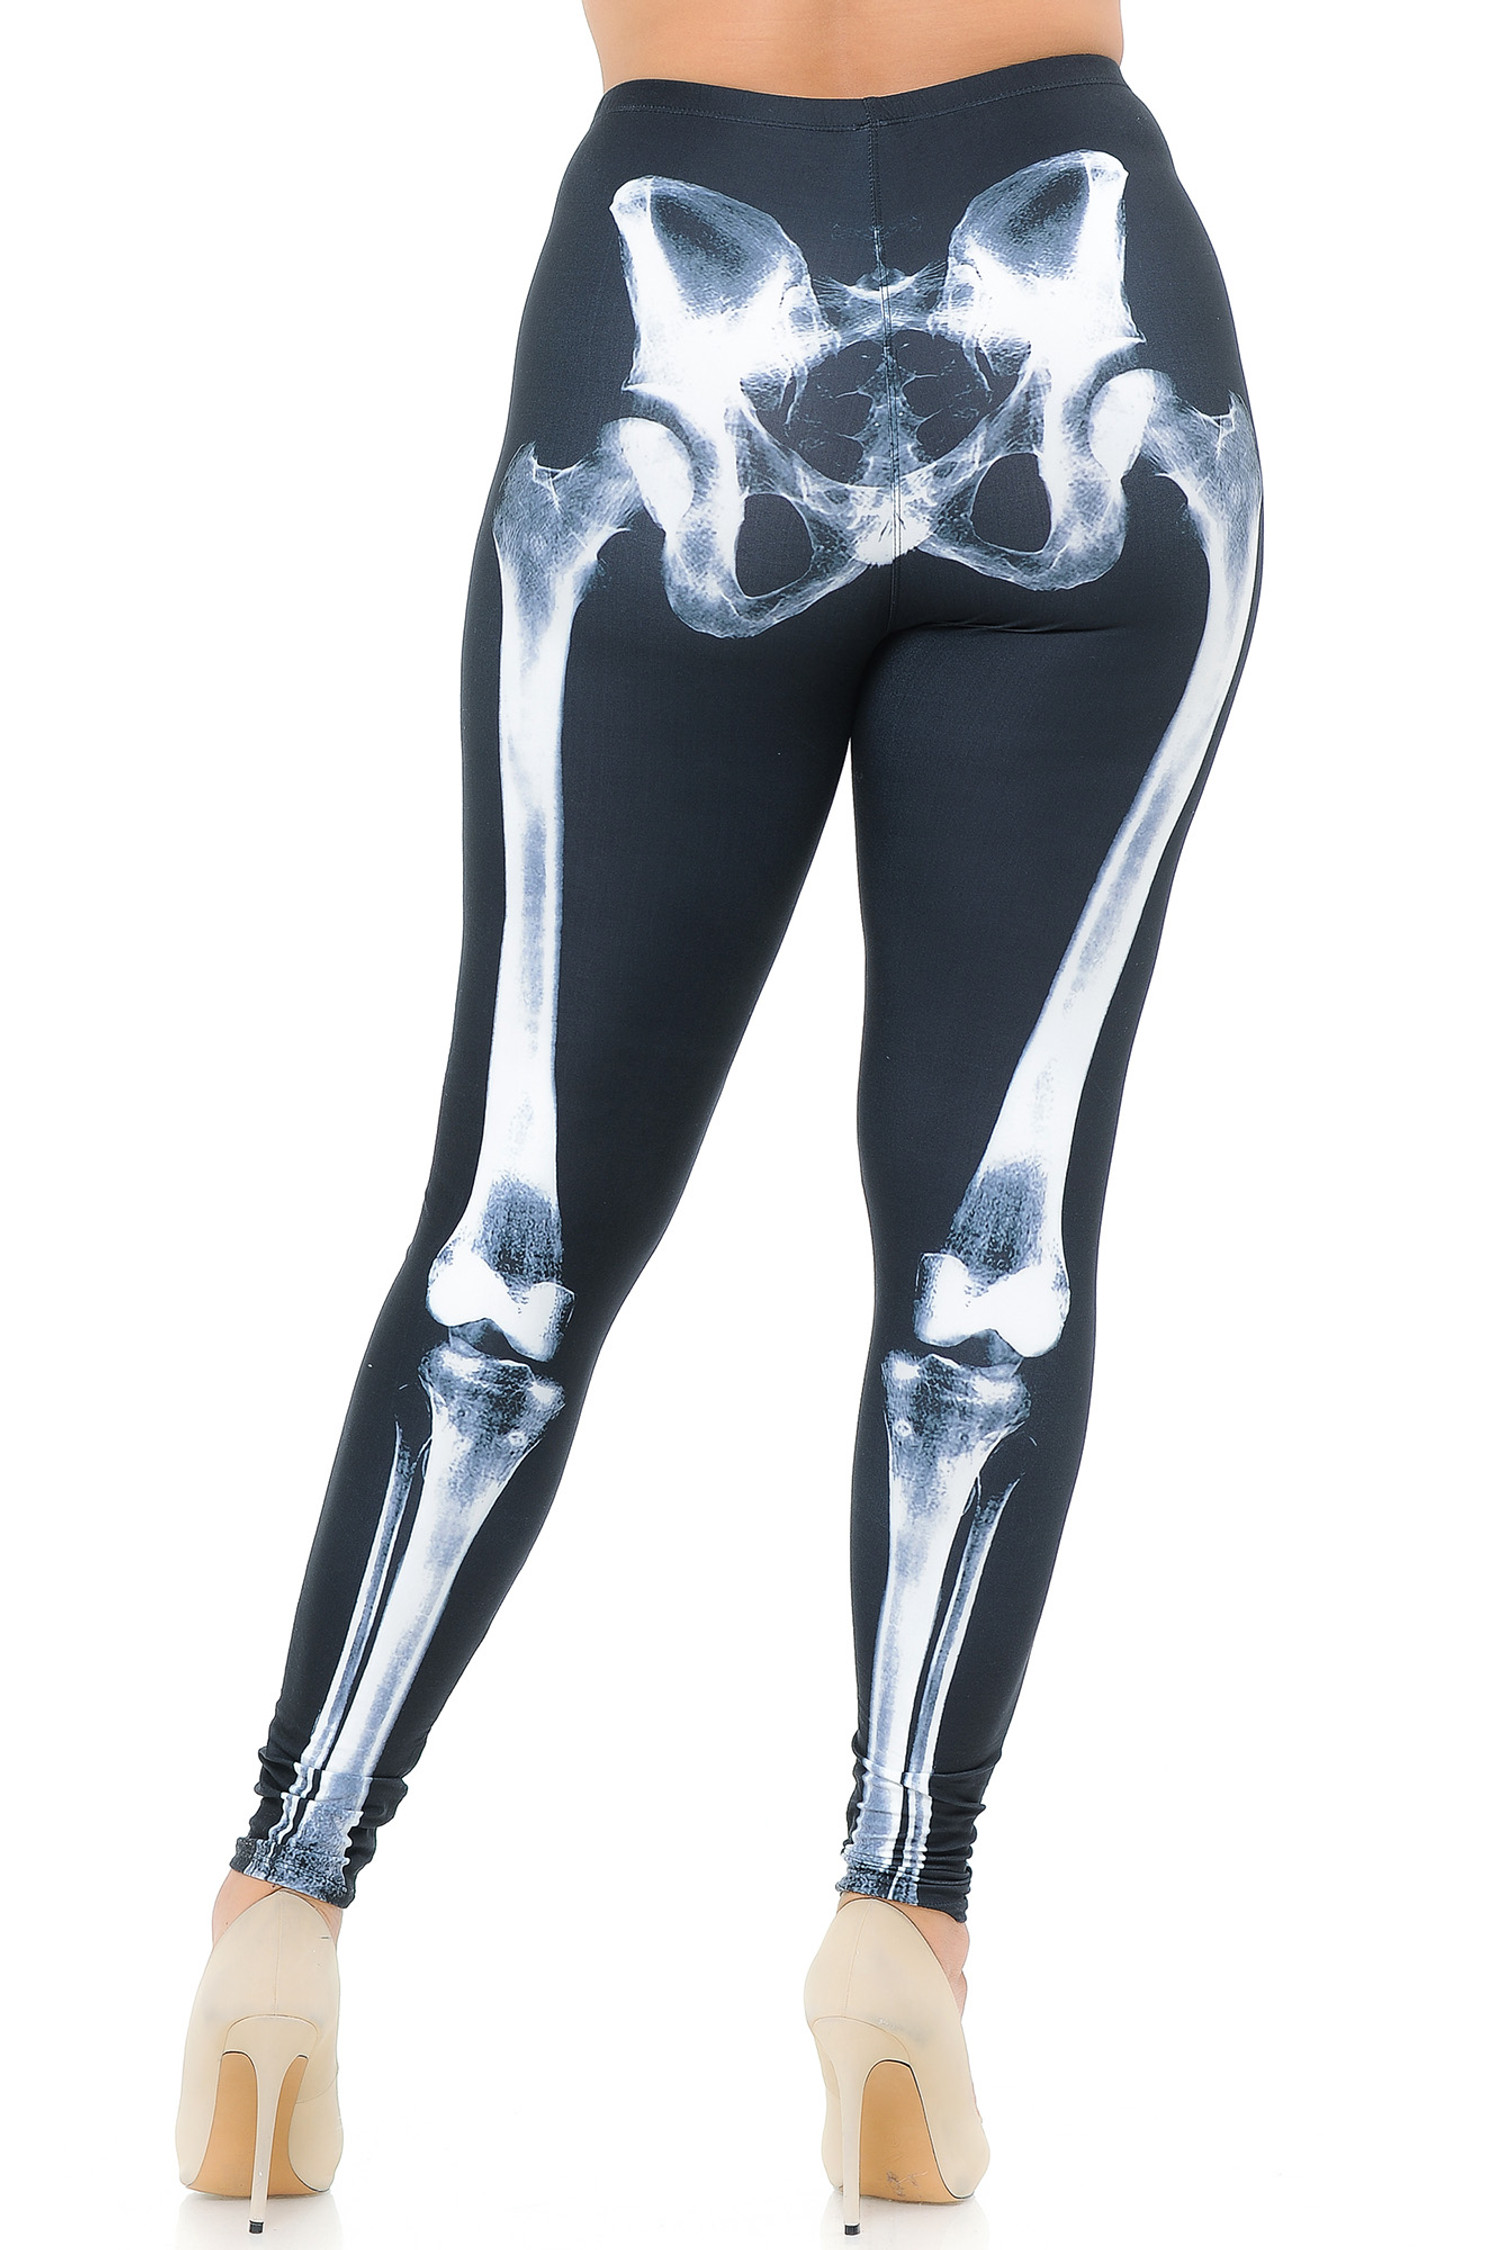 Creamy Soft X-Ray Skeleton Bones Extra Plus Size Leggings - USA Fashion™